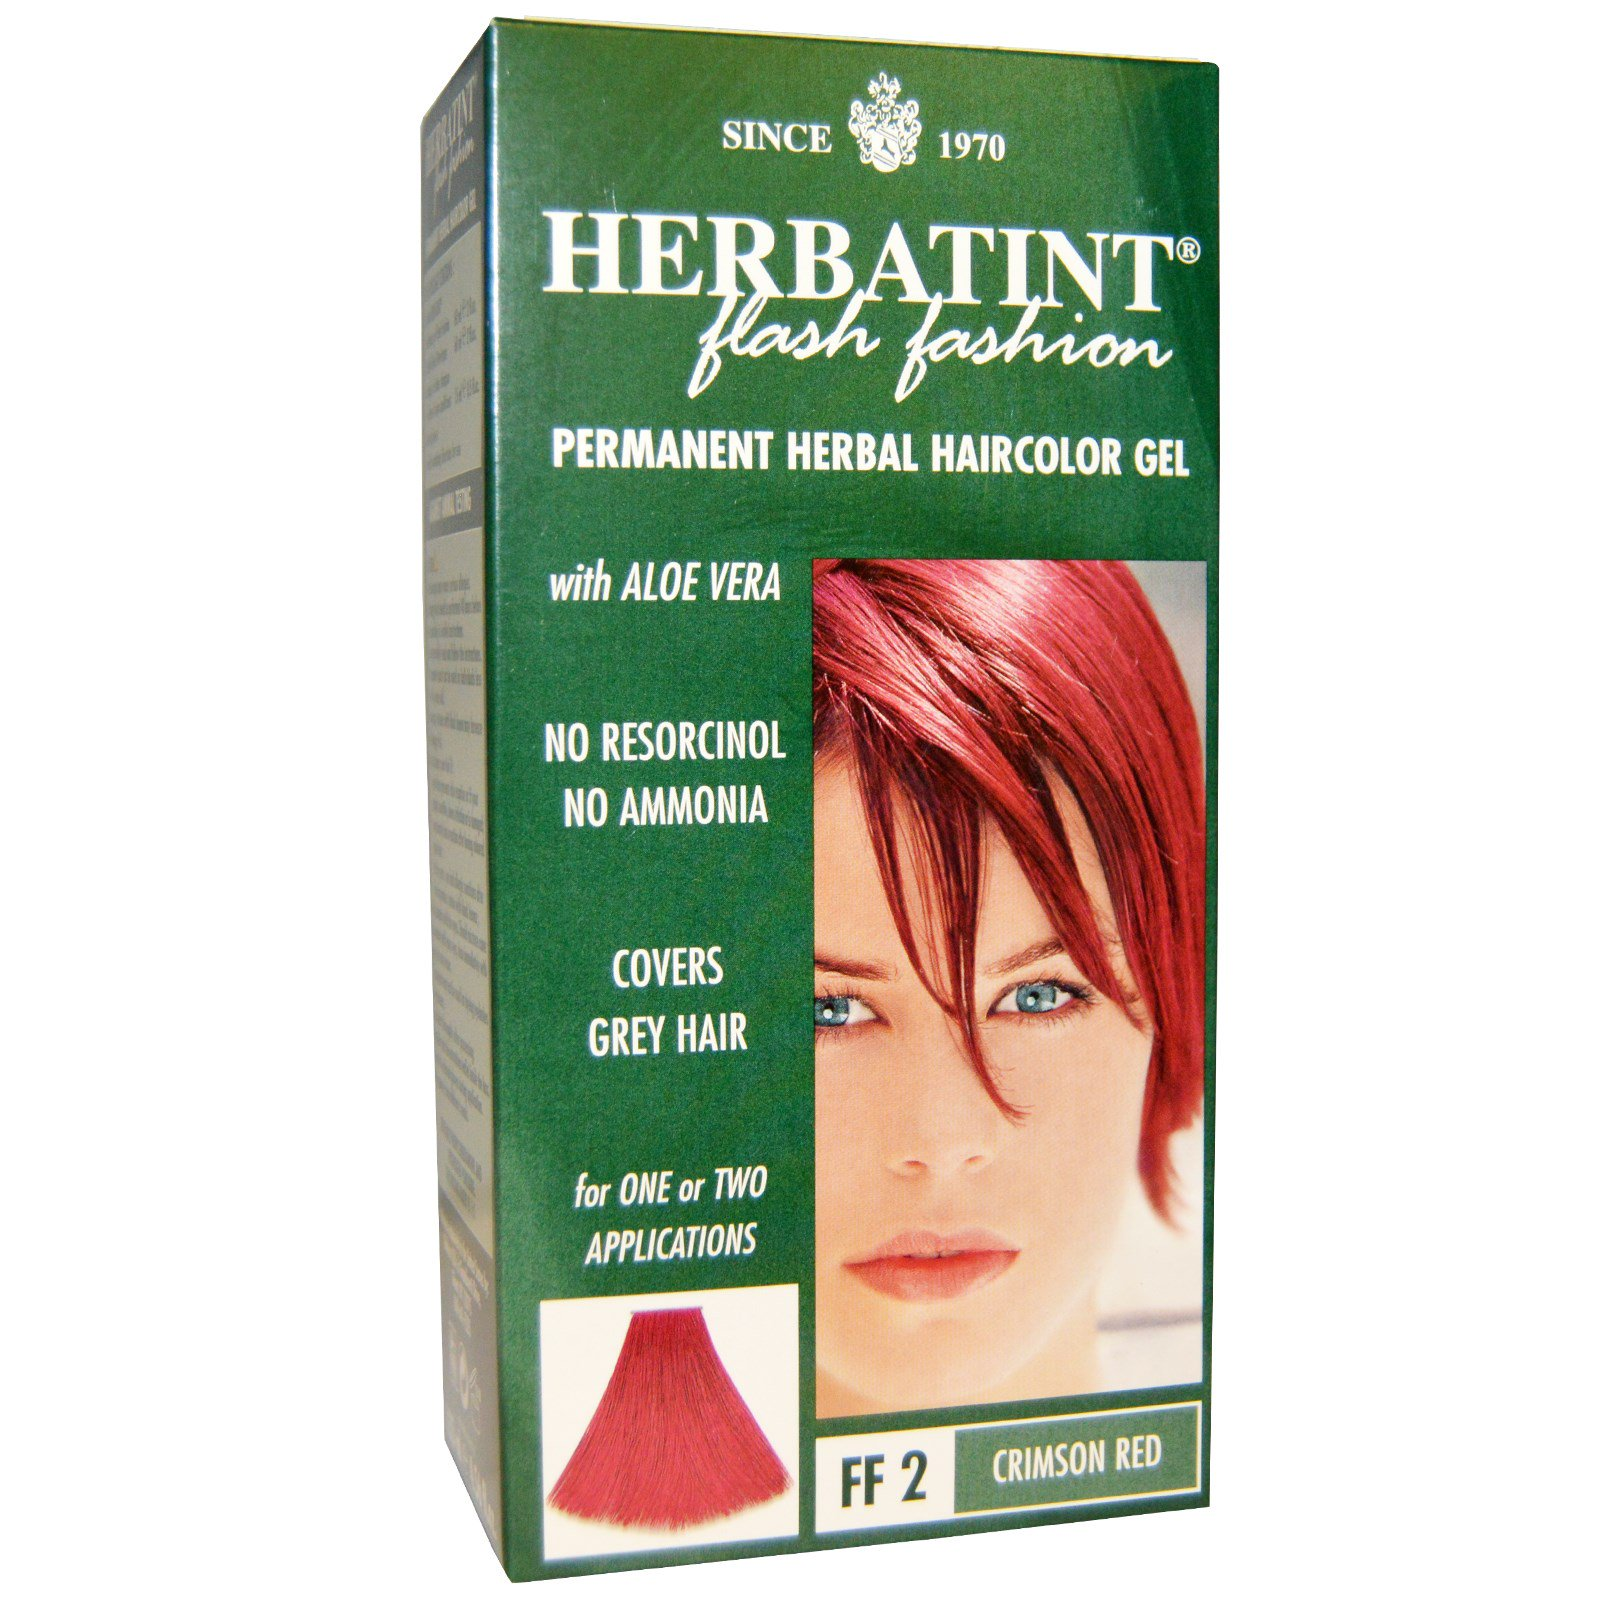 Herbatint Flash Fashion Permanent Herbal Haircolor Gel Ff 2